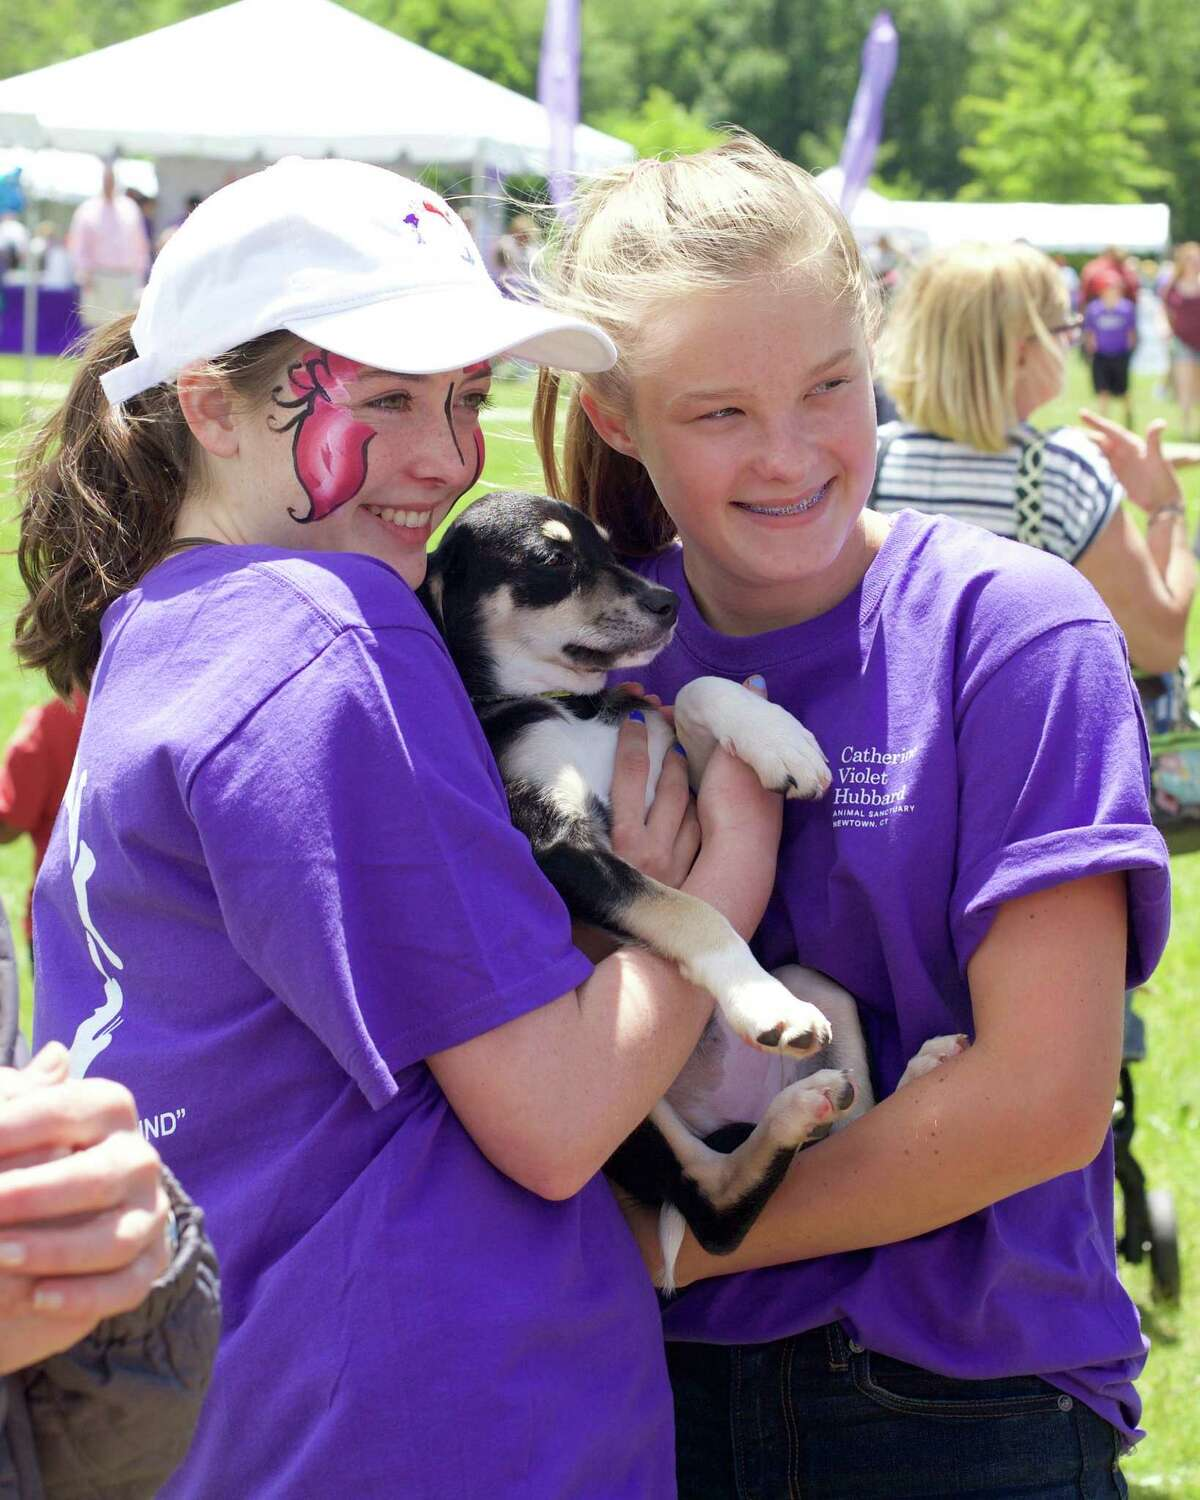 Volunteers Kaitlyn King and Olivia Grant (both 14 from Newtown) posing with a shepherd husky mix for adoption during the 3rd Annual Catherine's Butterfly Party on Saturday, June 3, 2017 from 12-4 at the Fairfield Hills Campus in Newtown.